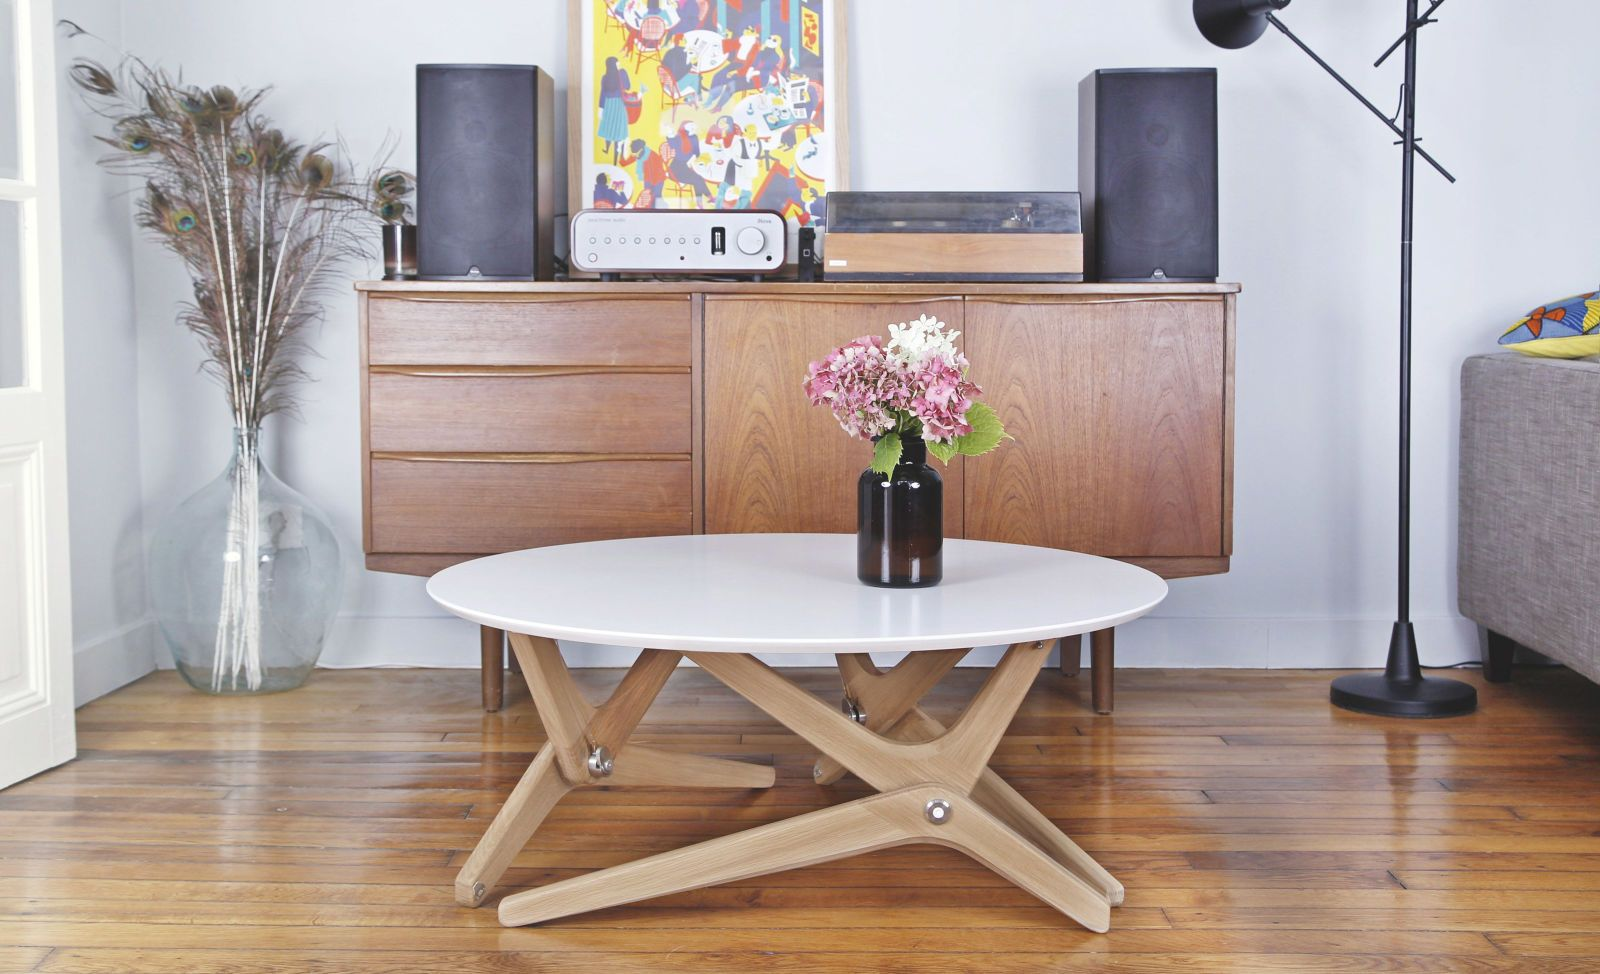 This Coffee Table Converts Into A Dining In 1 Second